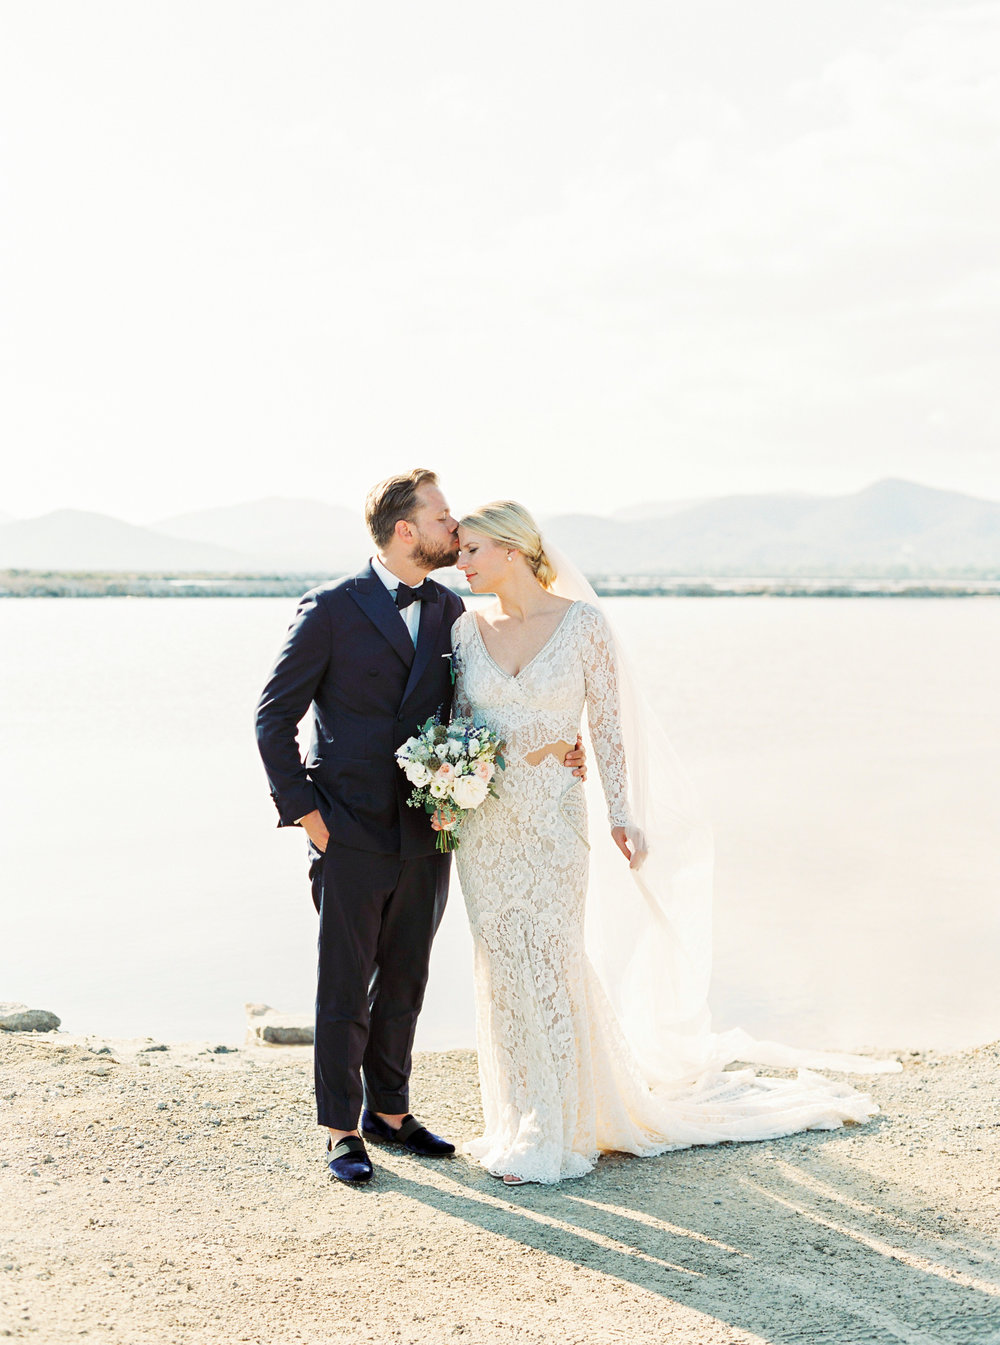 Ibiza Luxury Wedding Stylish Bride and Groom